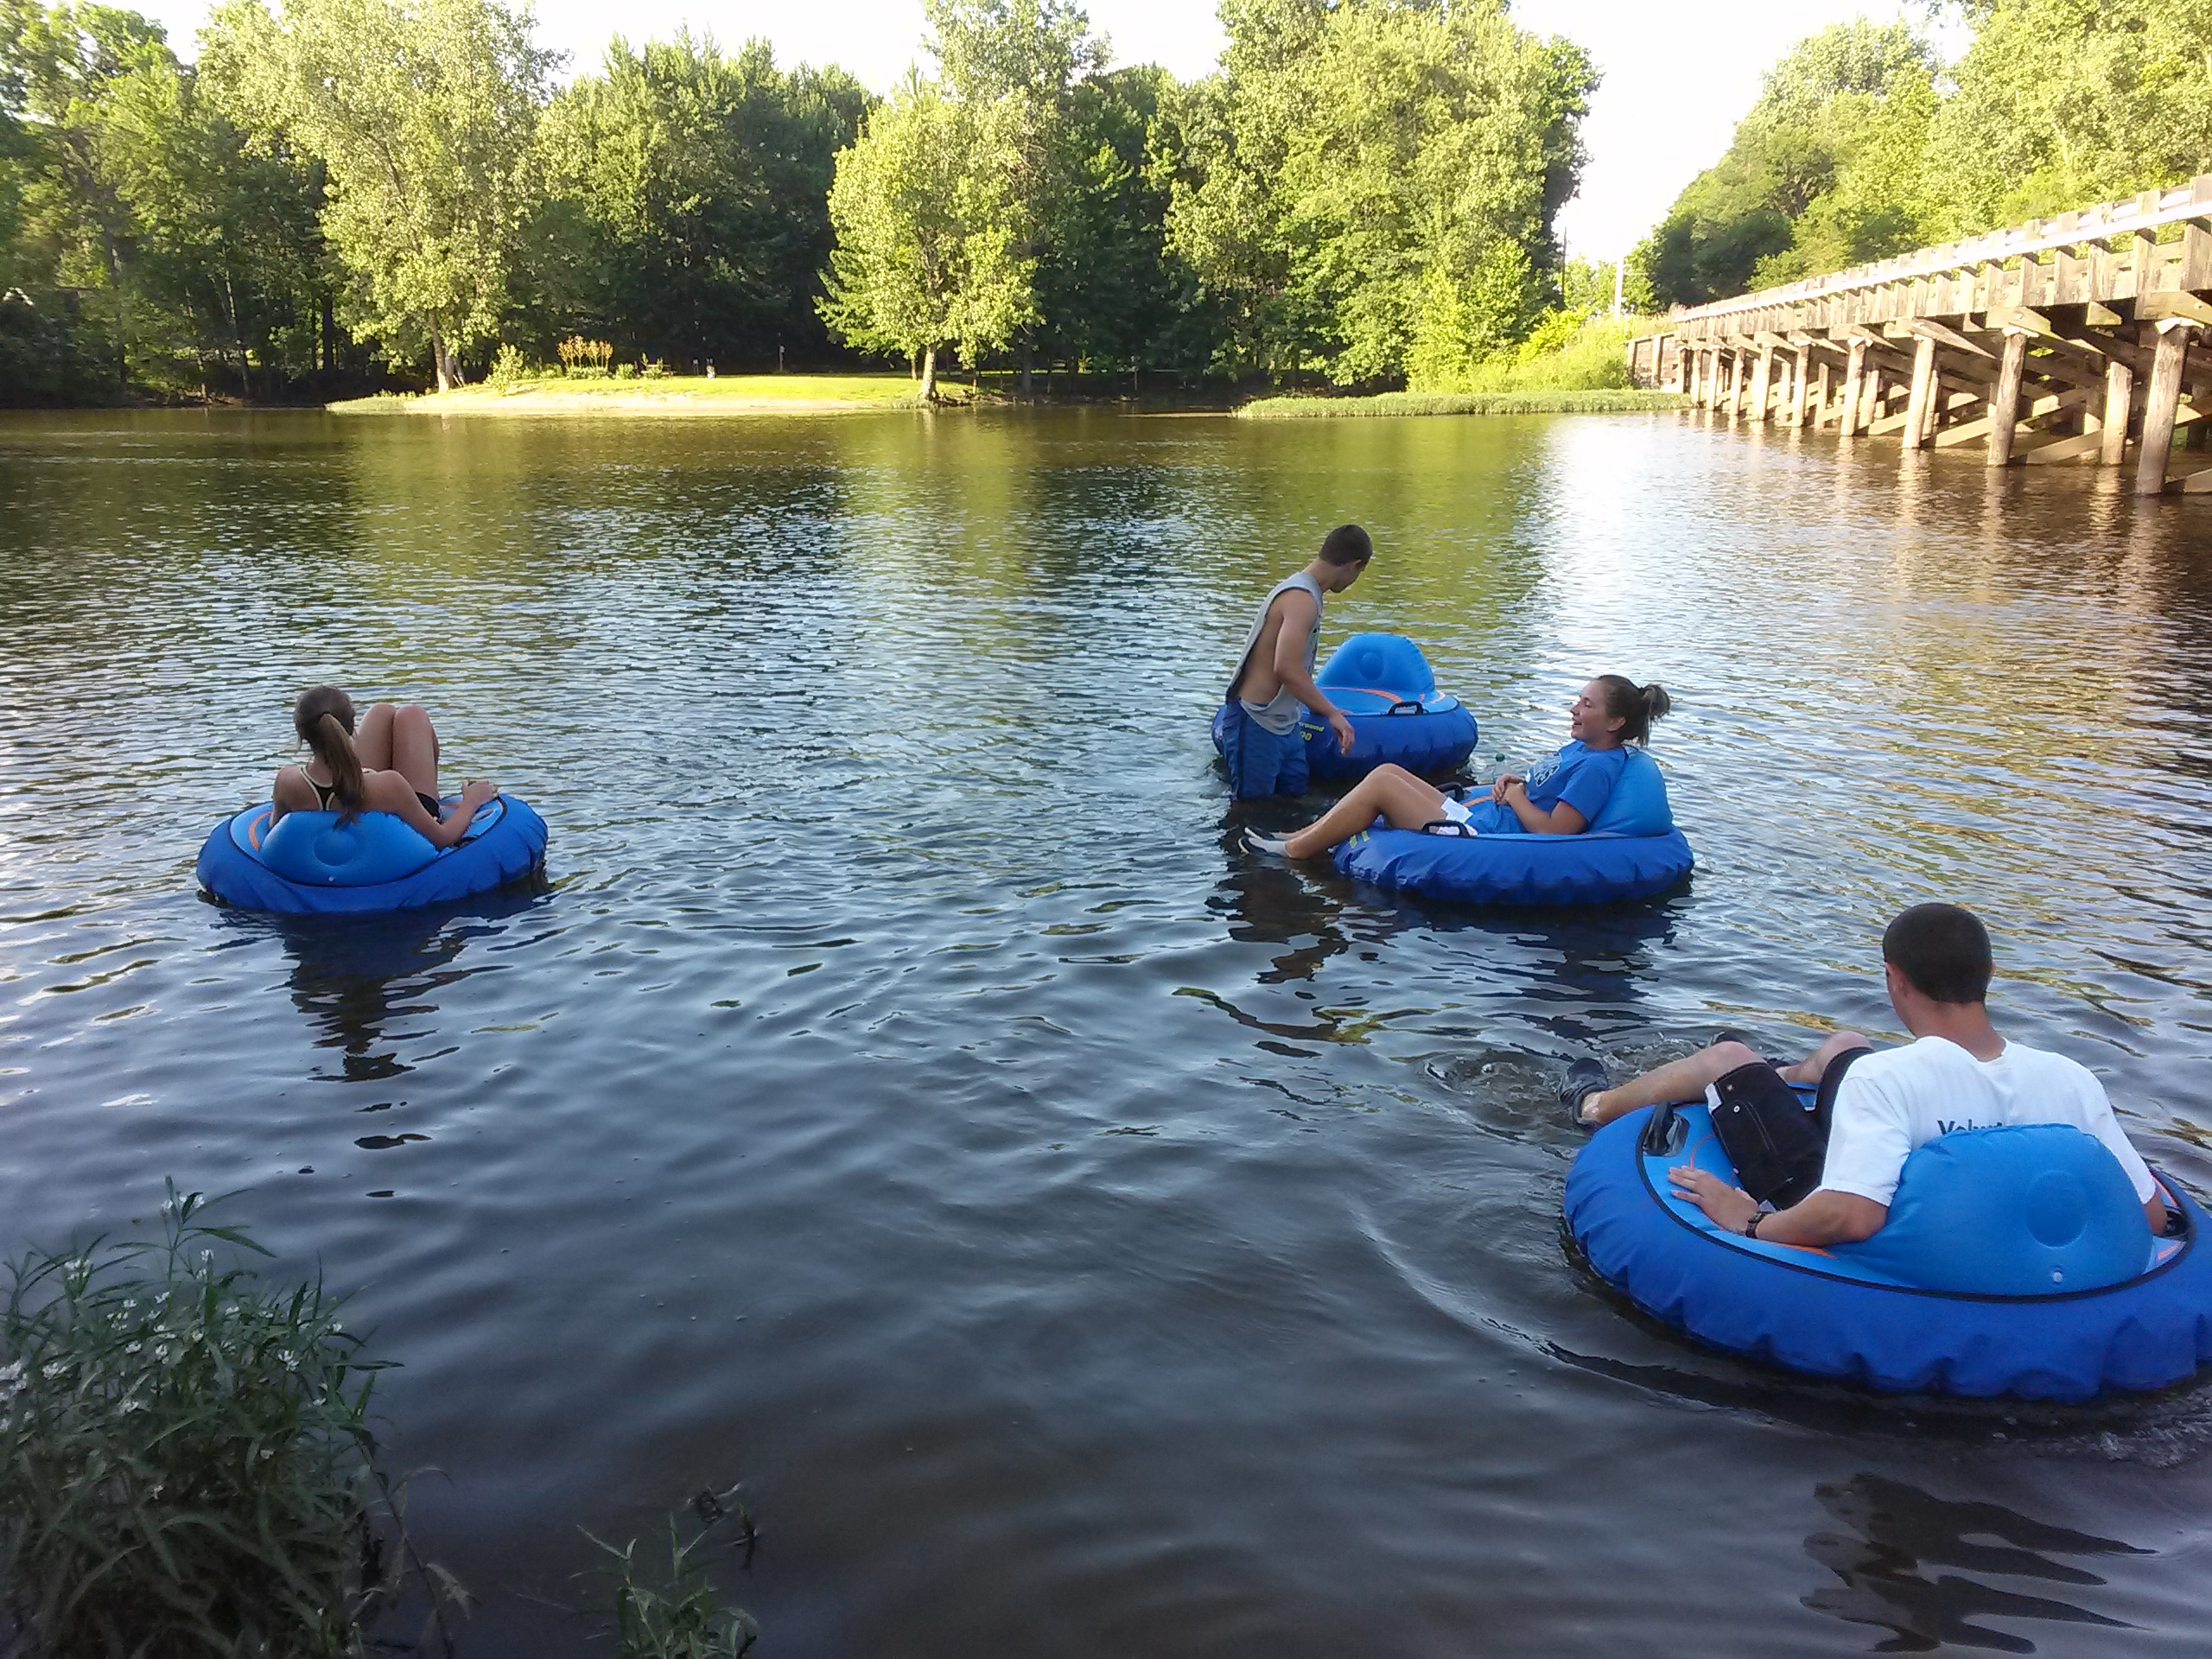 Tubing on the St. Joseph